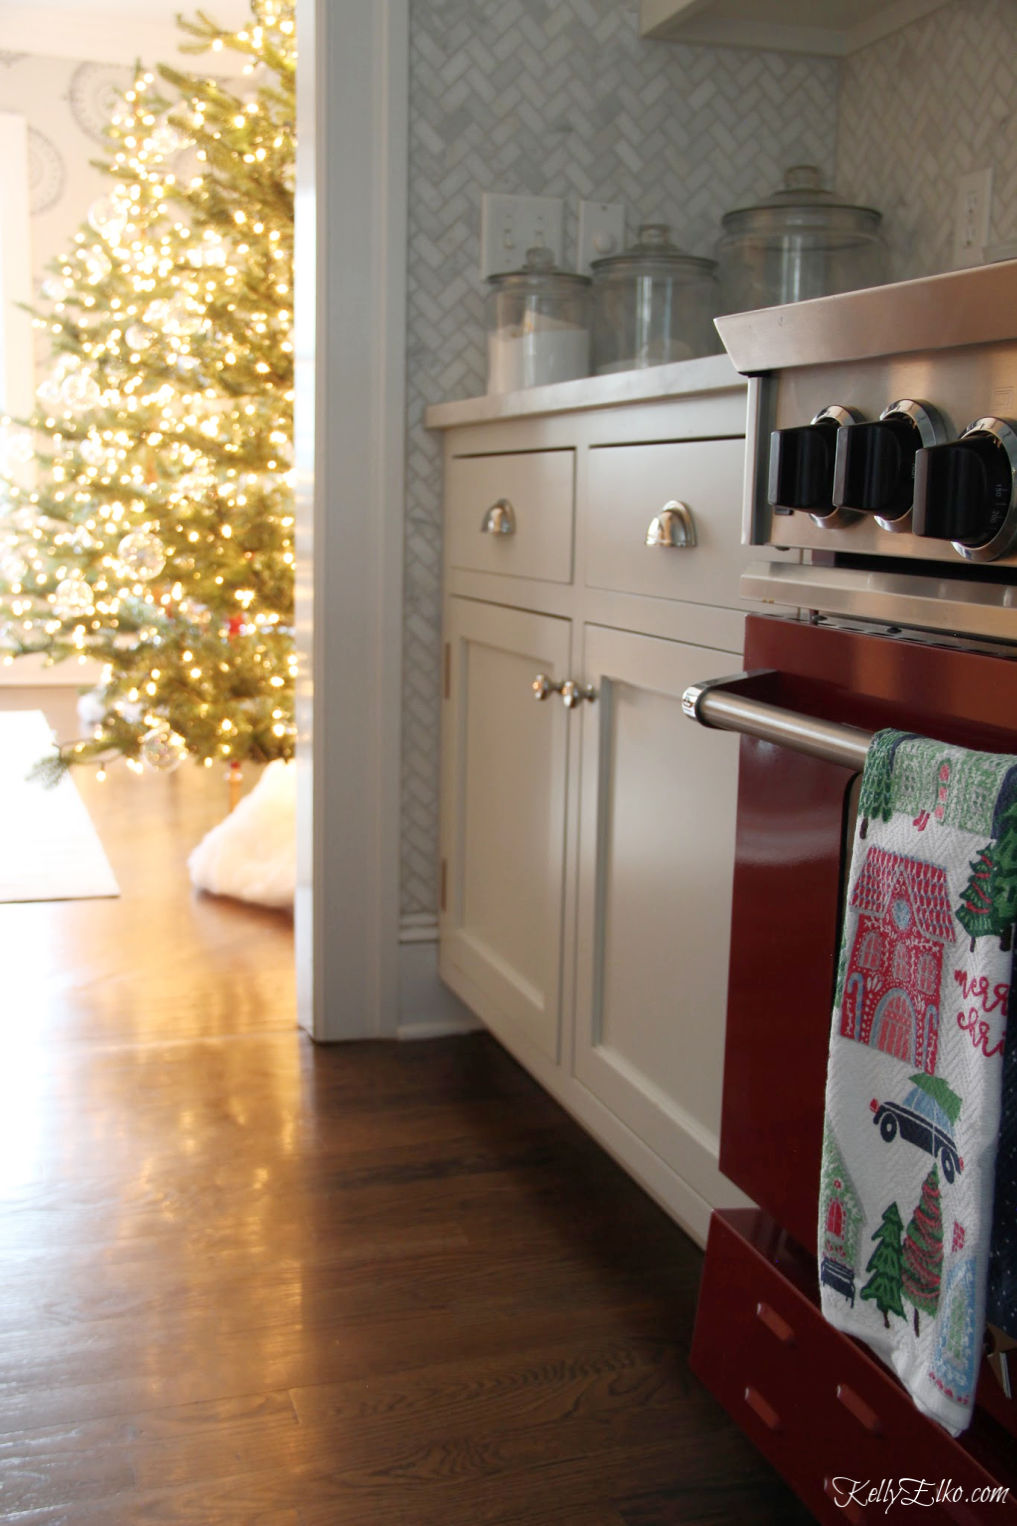 Christmas Home Tour - love the red stove and the twinkling Christmas trees kellyelko.com #christmas #christmasdecor #christmasdecorating #christmashome #christmastour #diychristmas #christmasideas #christmasmantel #christmastree #christmasornaments #vintagechristmas #farmhousechristmas #colorfulchristmas #creativechristmas #kellyelko #christmaskitchen #redstove